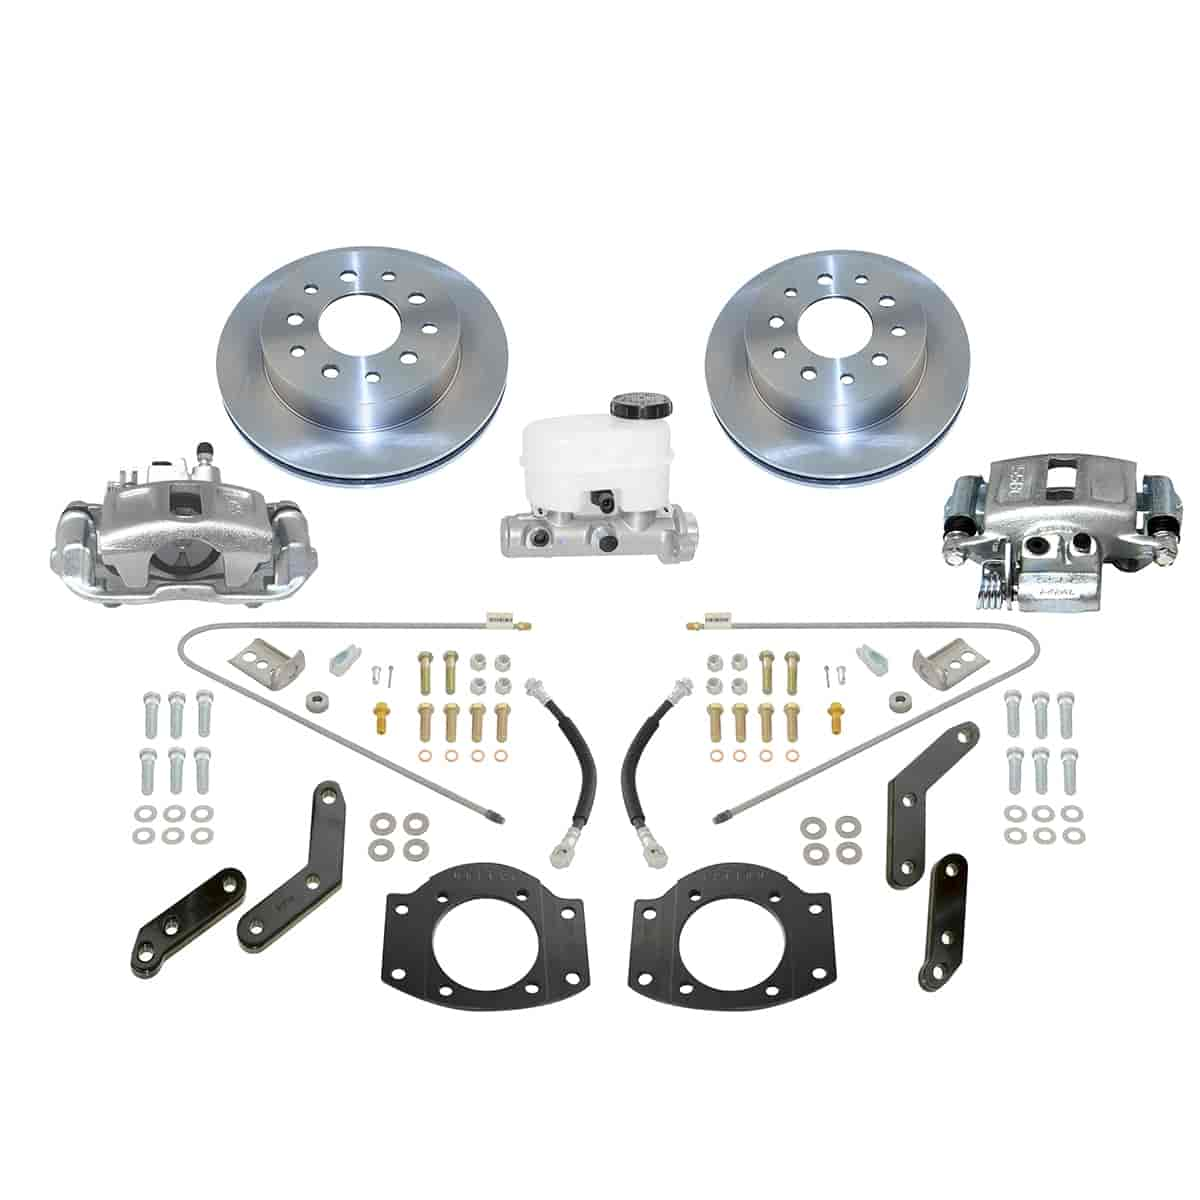 Stainless Steel Brakes A126-5 - Stainless Steel Brakes Single Piston Rear Drum to Disc Brake Conversion Kits